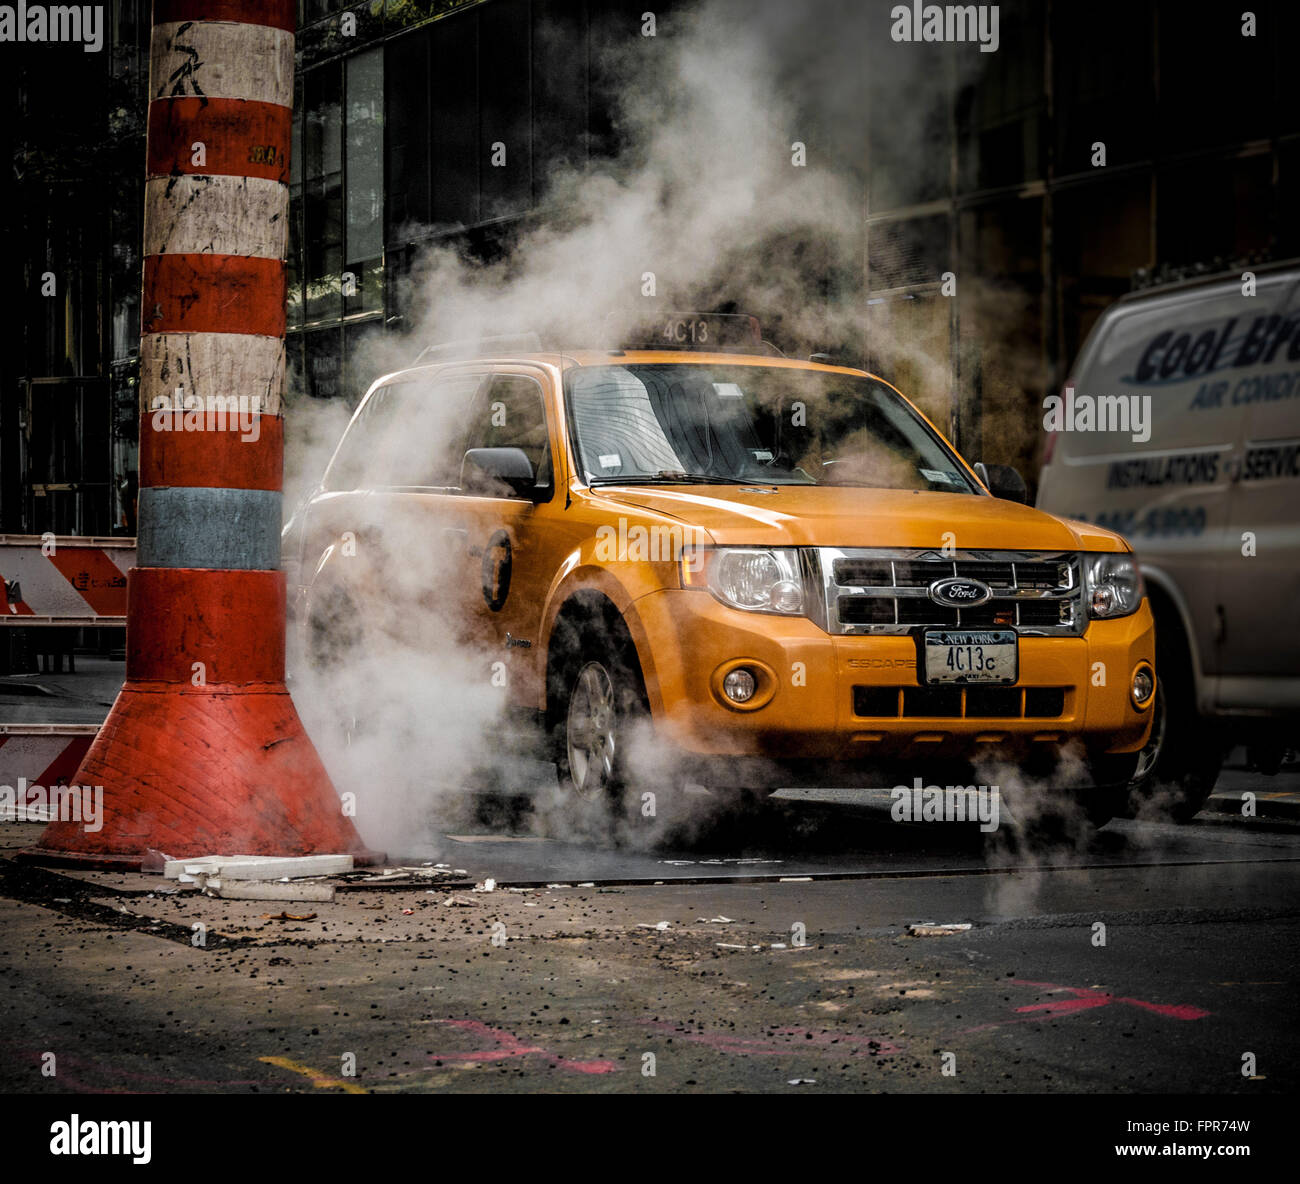 Taxi and steam vent, New York City, USA - Stock Image